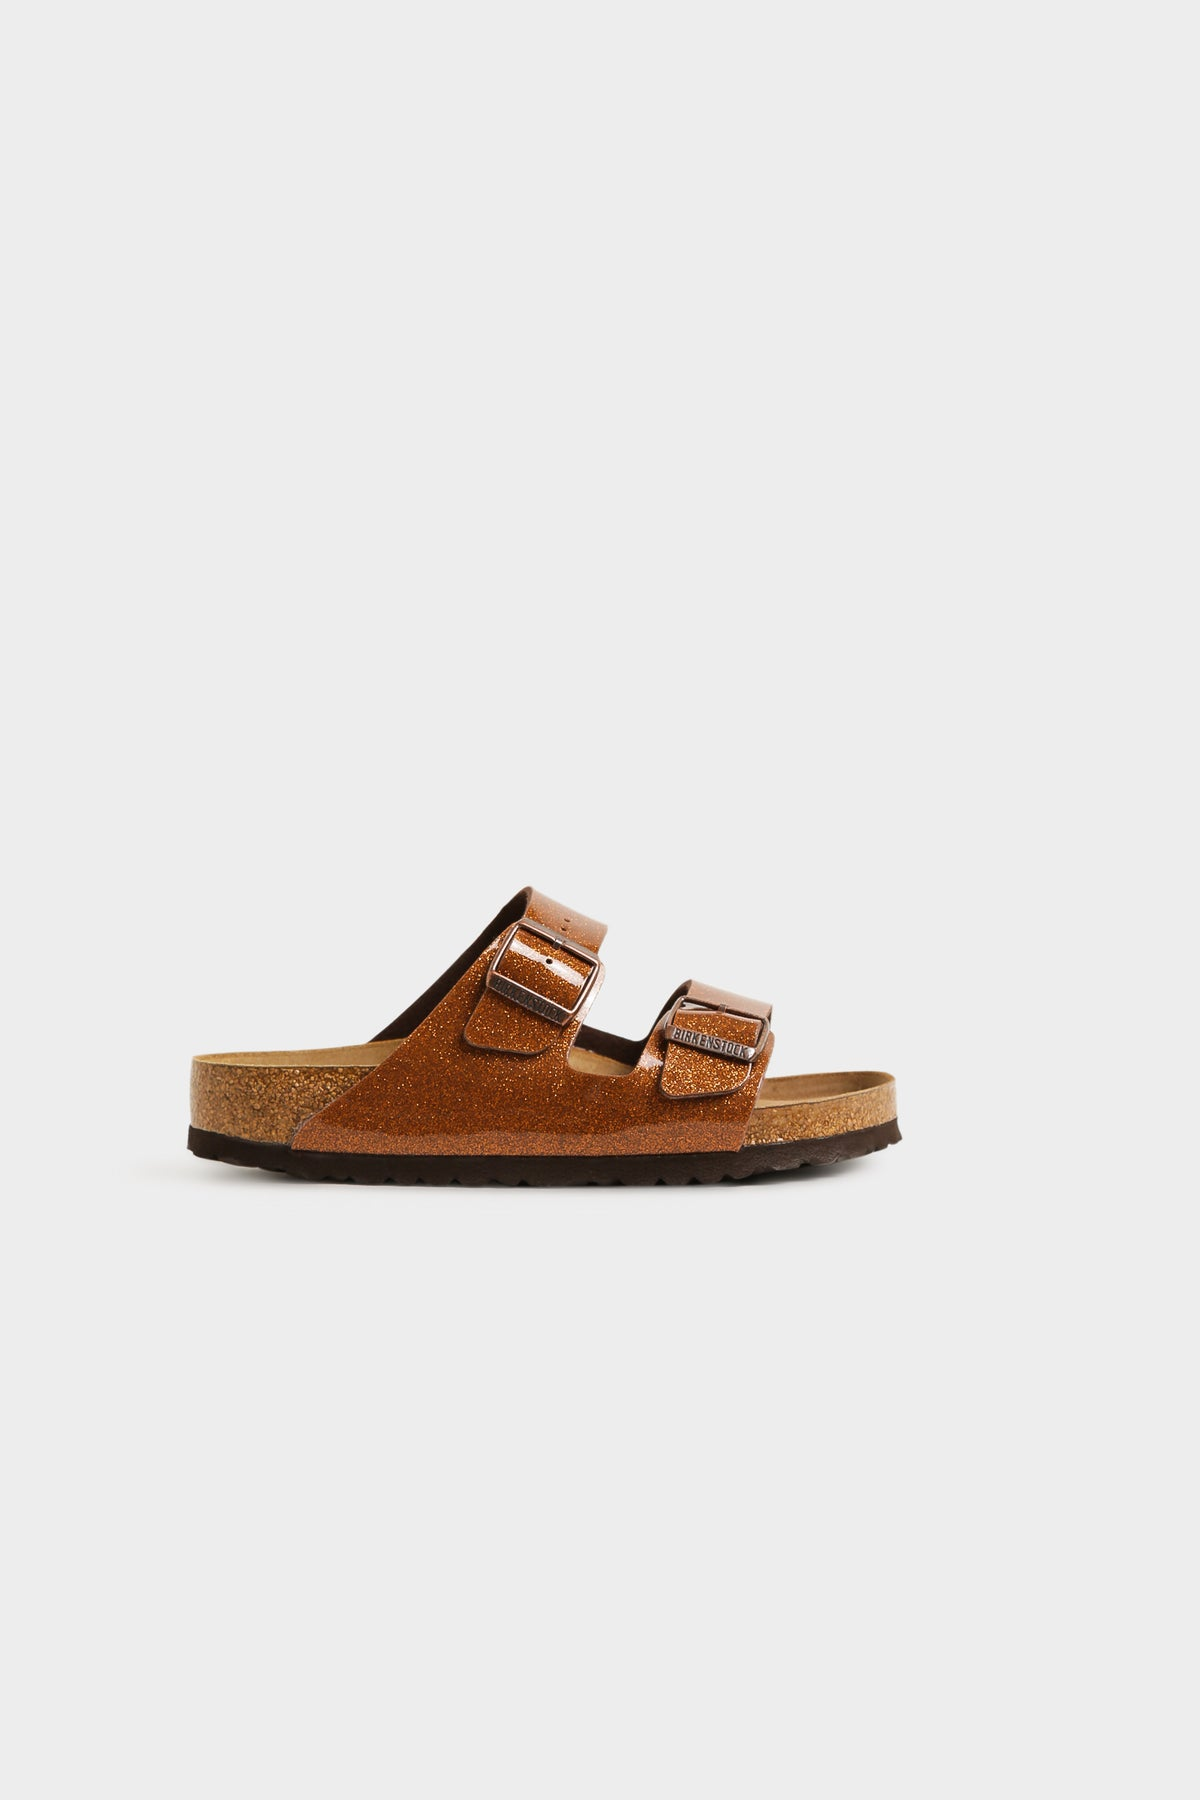 Unisex Arizona Sandals in Bronze